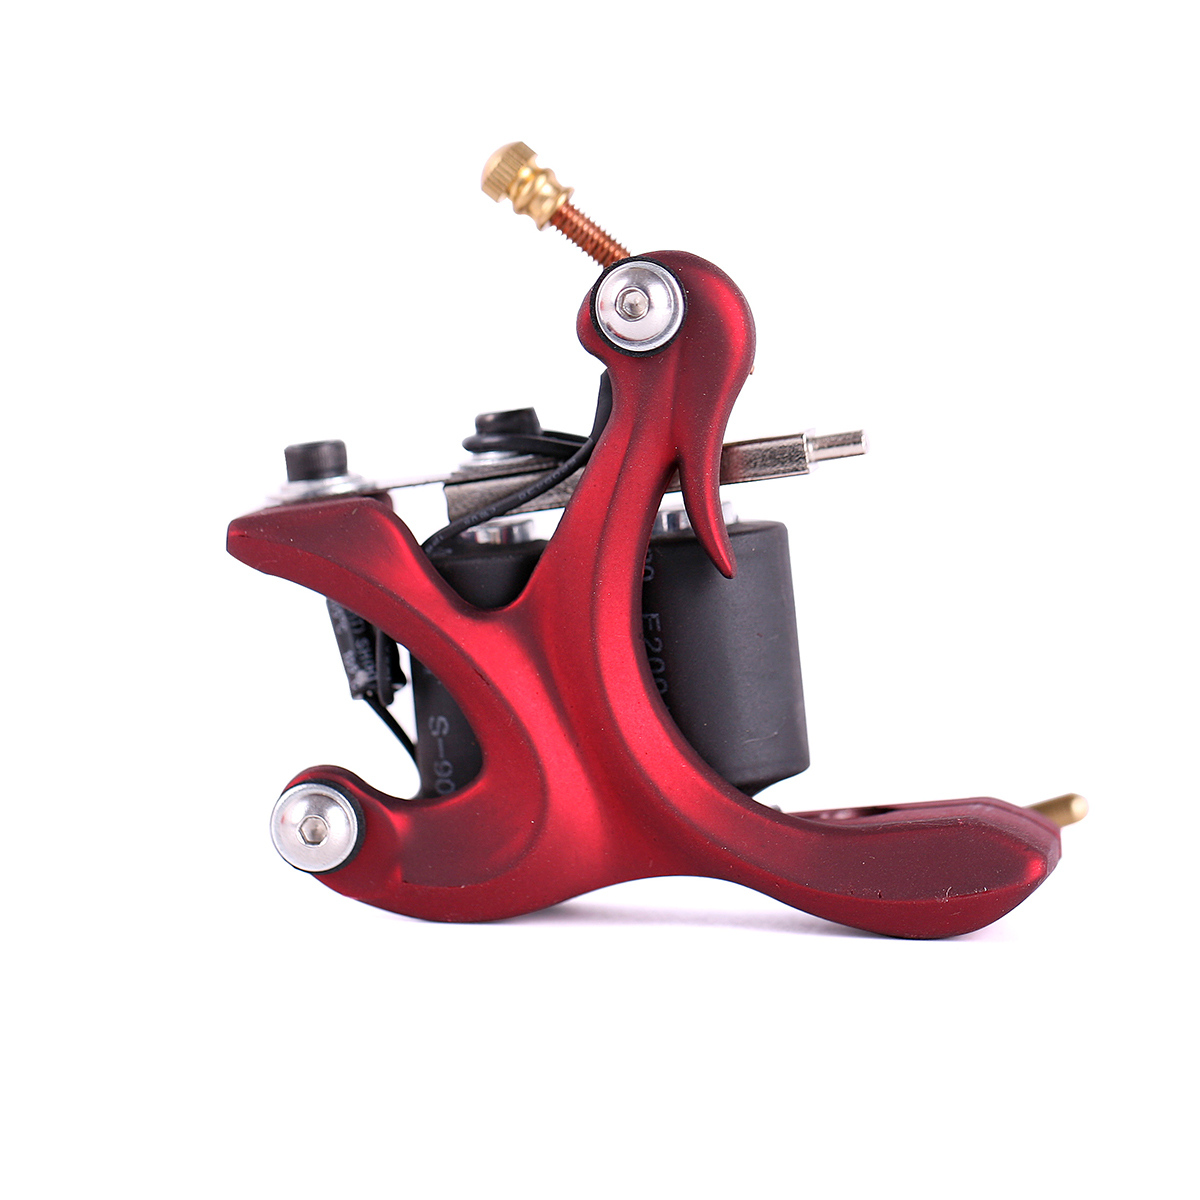 Z300 Red Handmade Professional Rotary Tattoo Machine Kit 8 Wrap Coils Tattoo Liner Shader Gun Free Shipping(China (Mainland))